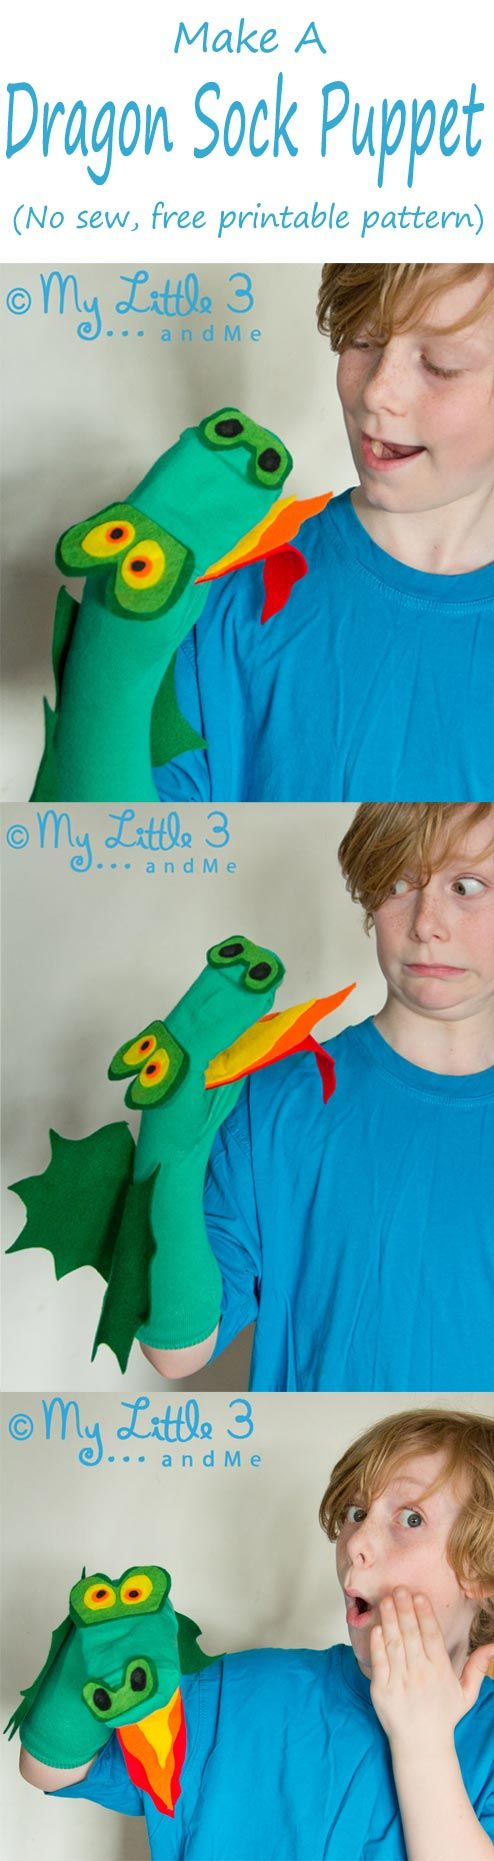 Make an adorable no sew Dragon Sock Puppet. (Free printable pattern.) RRRRrrrooooaaar!!!